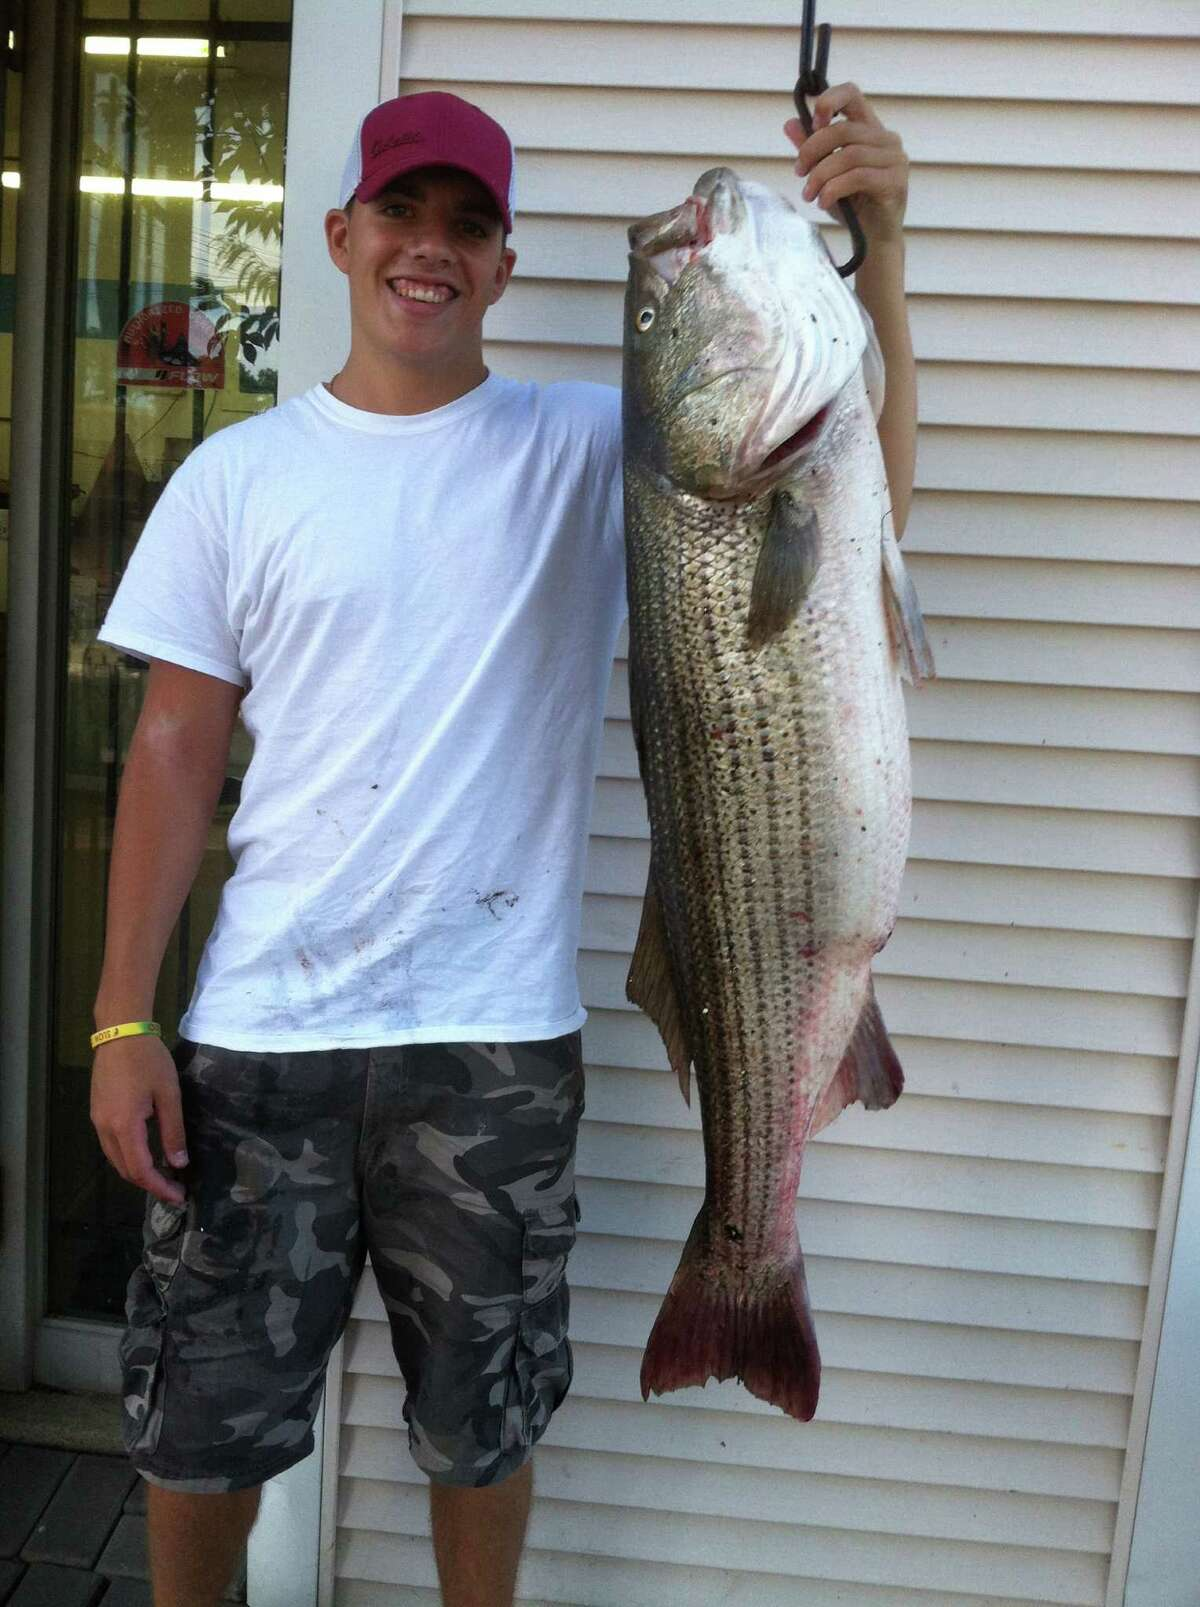 John Curran, 18, of North Branford holds a 47.5-inch, 41-pound striper he caught in the Housatonic River last week.